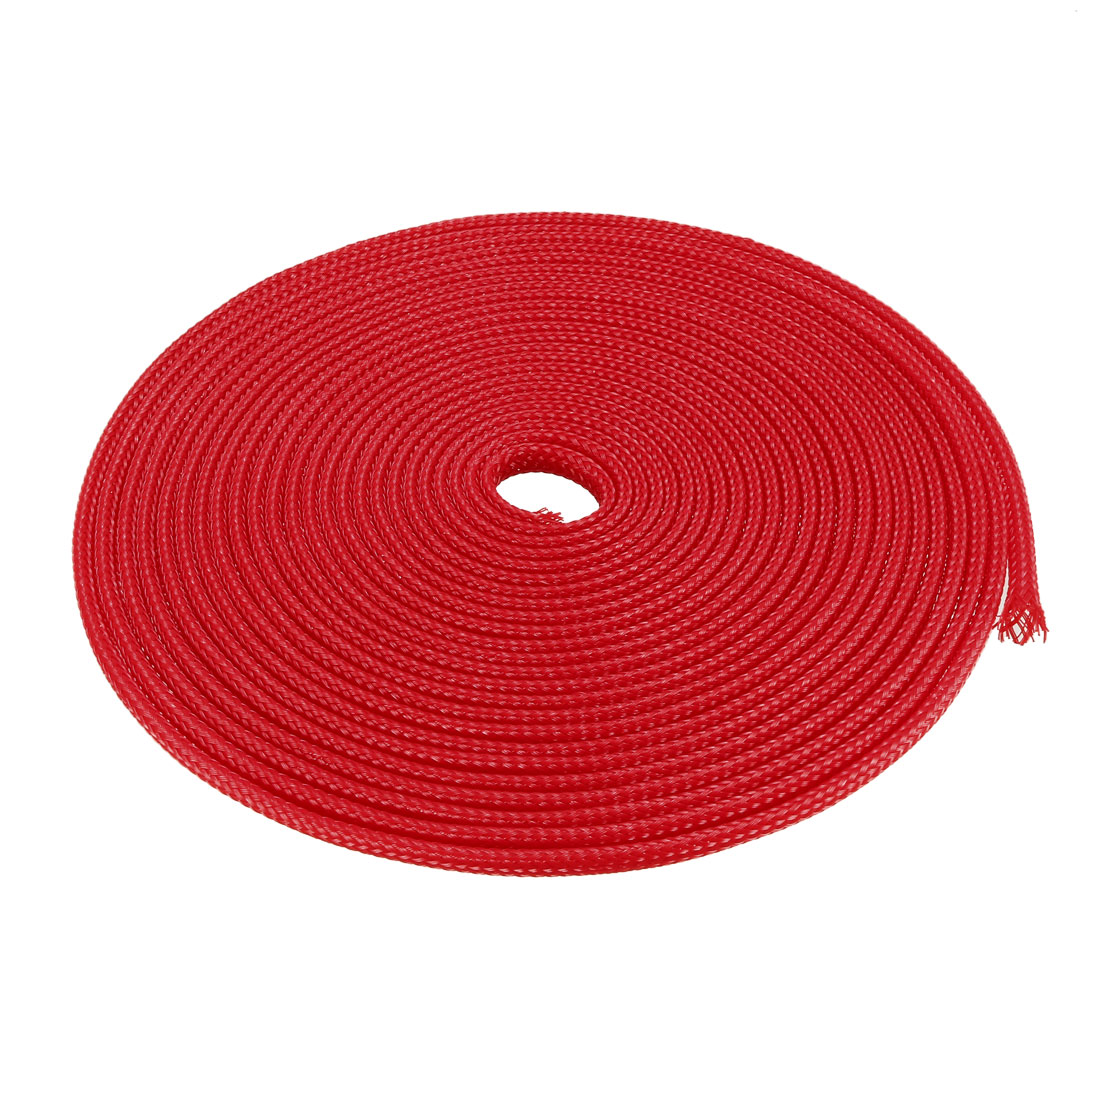 8mm Dia Tight Braided PET Expandable Sleeving Cable Wire Wrap Sheath Red 5M